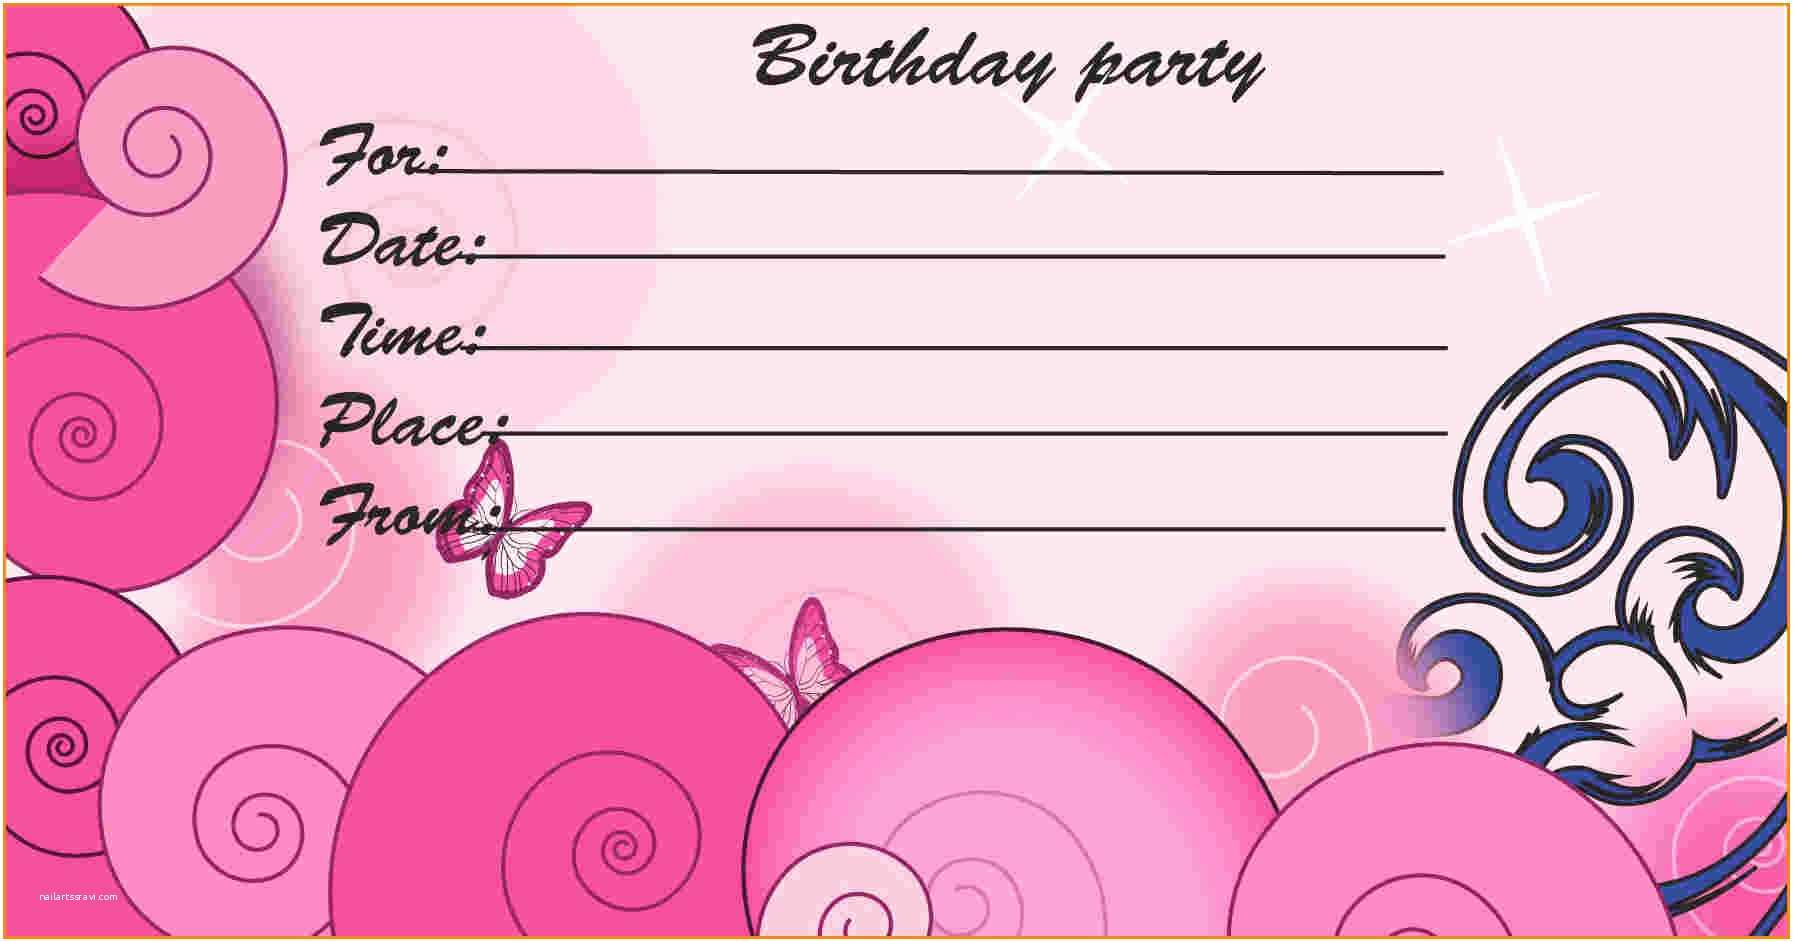 Printable Party Invitations Free Printable Kids Birthday Party Invitations Templates